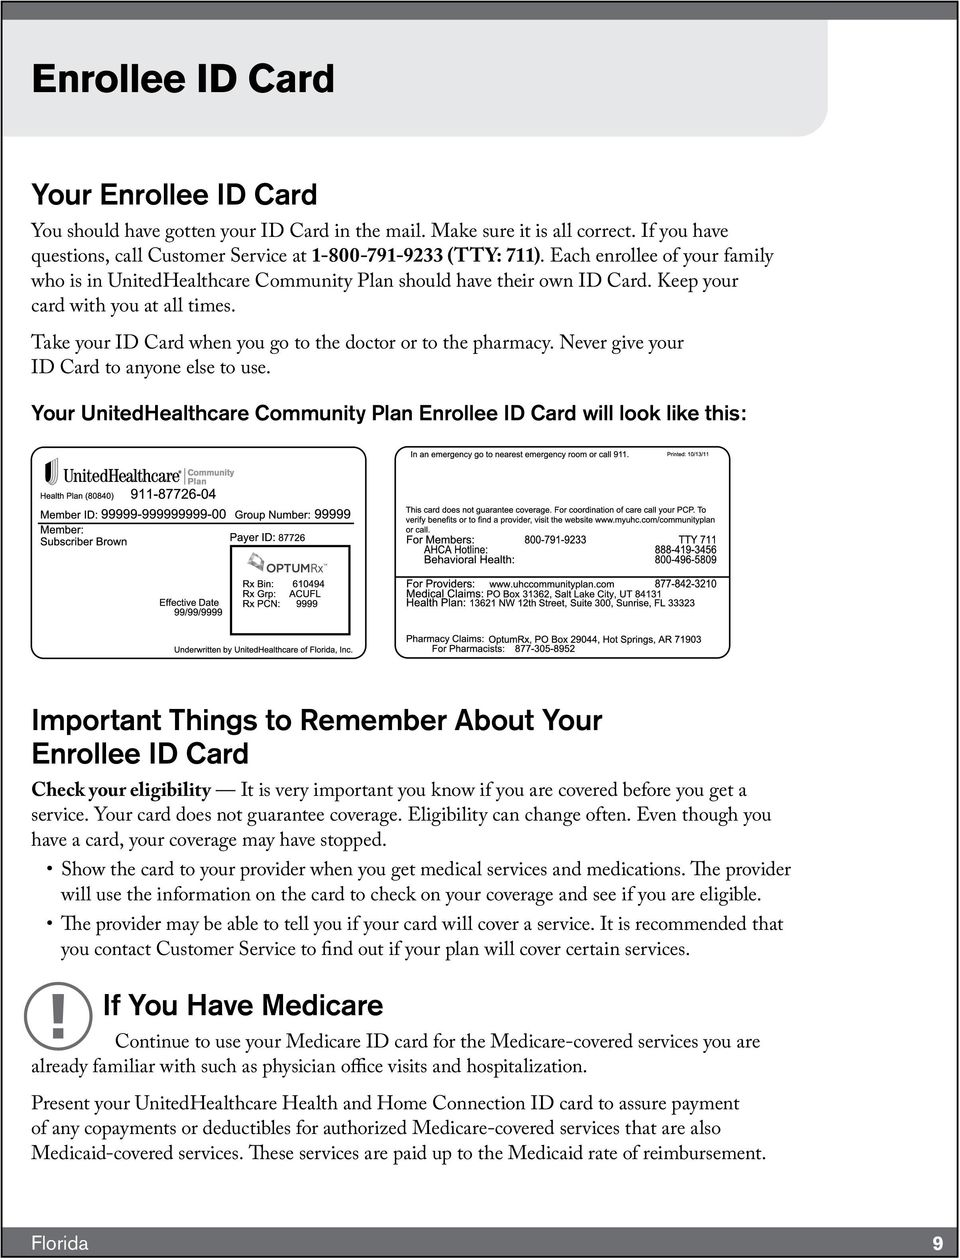 Unitedhealthcare Community Plan Health And Home Connection Enrollee